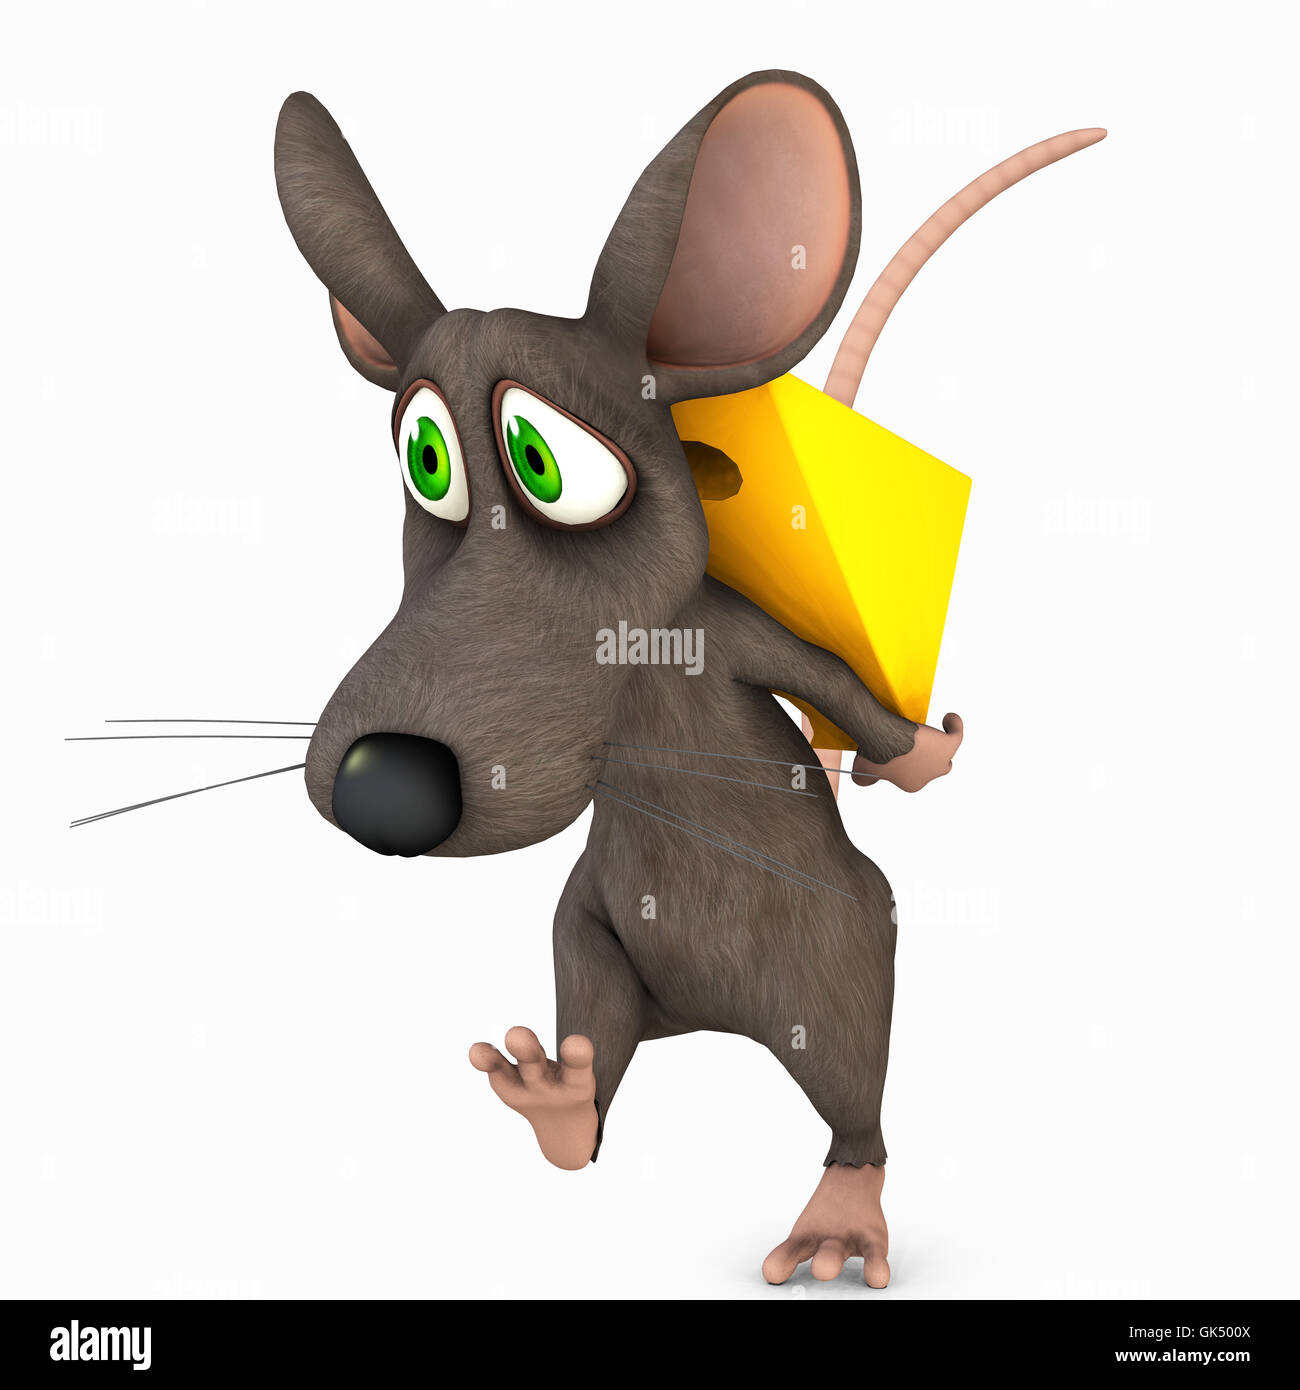 toon mouse - Stock Image